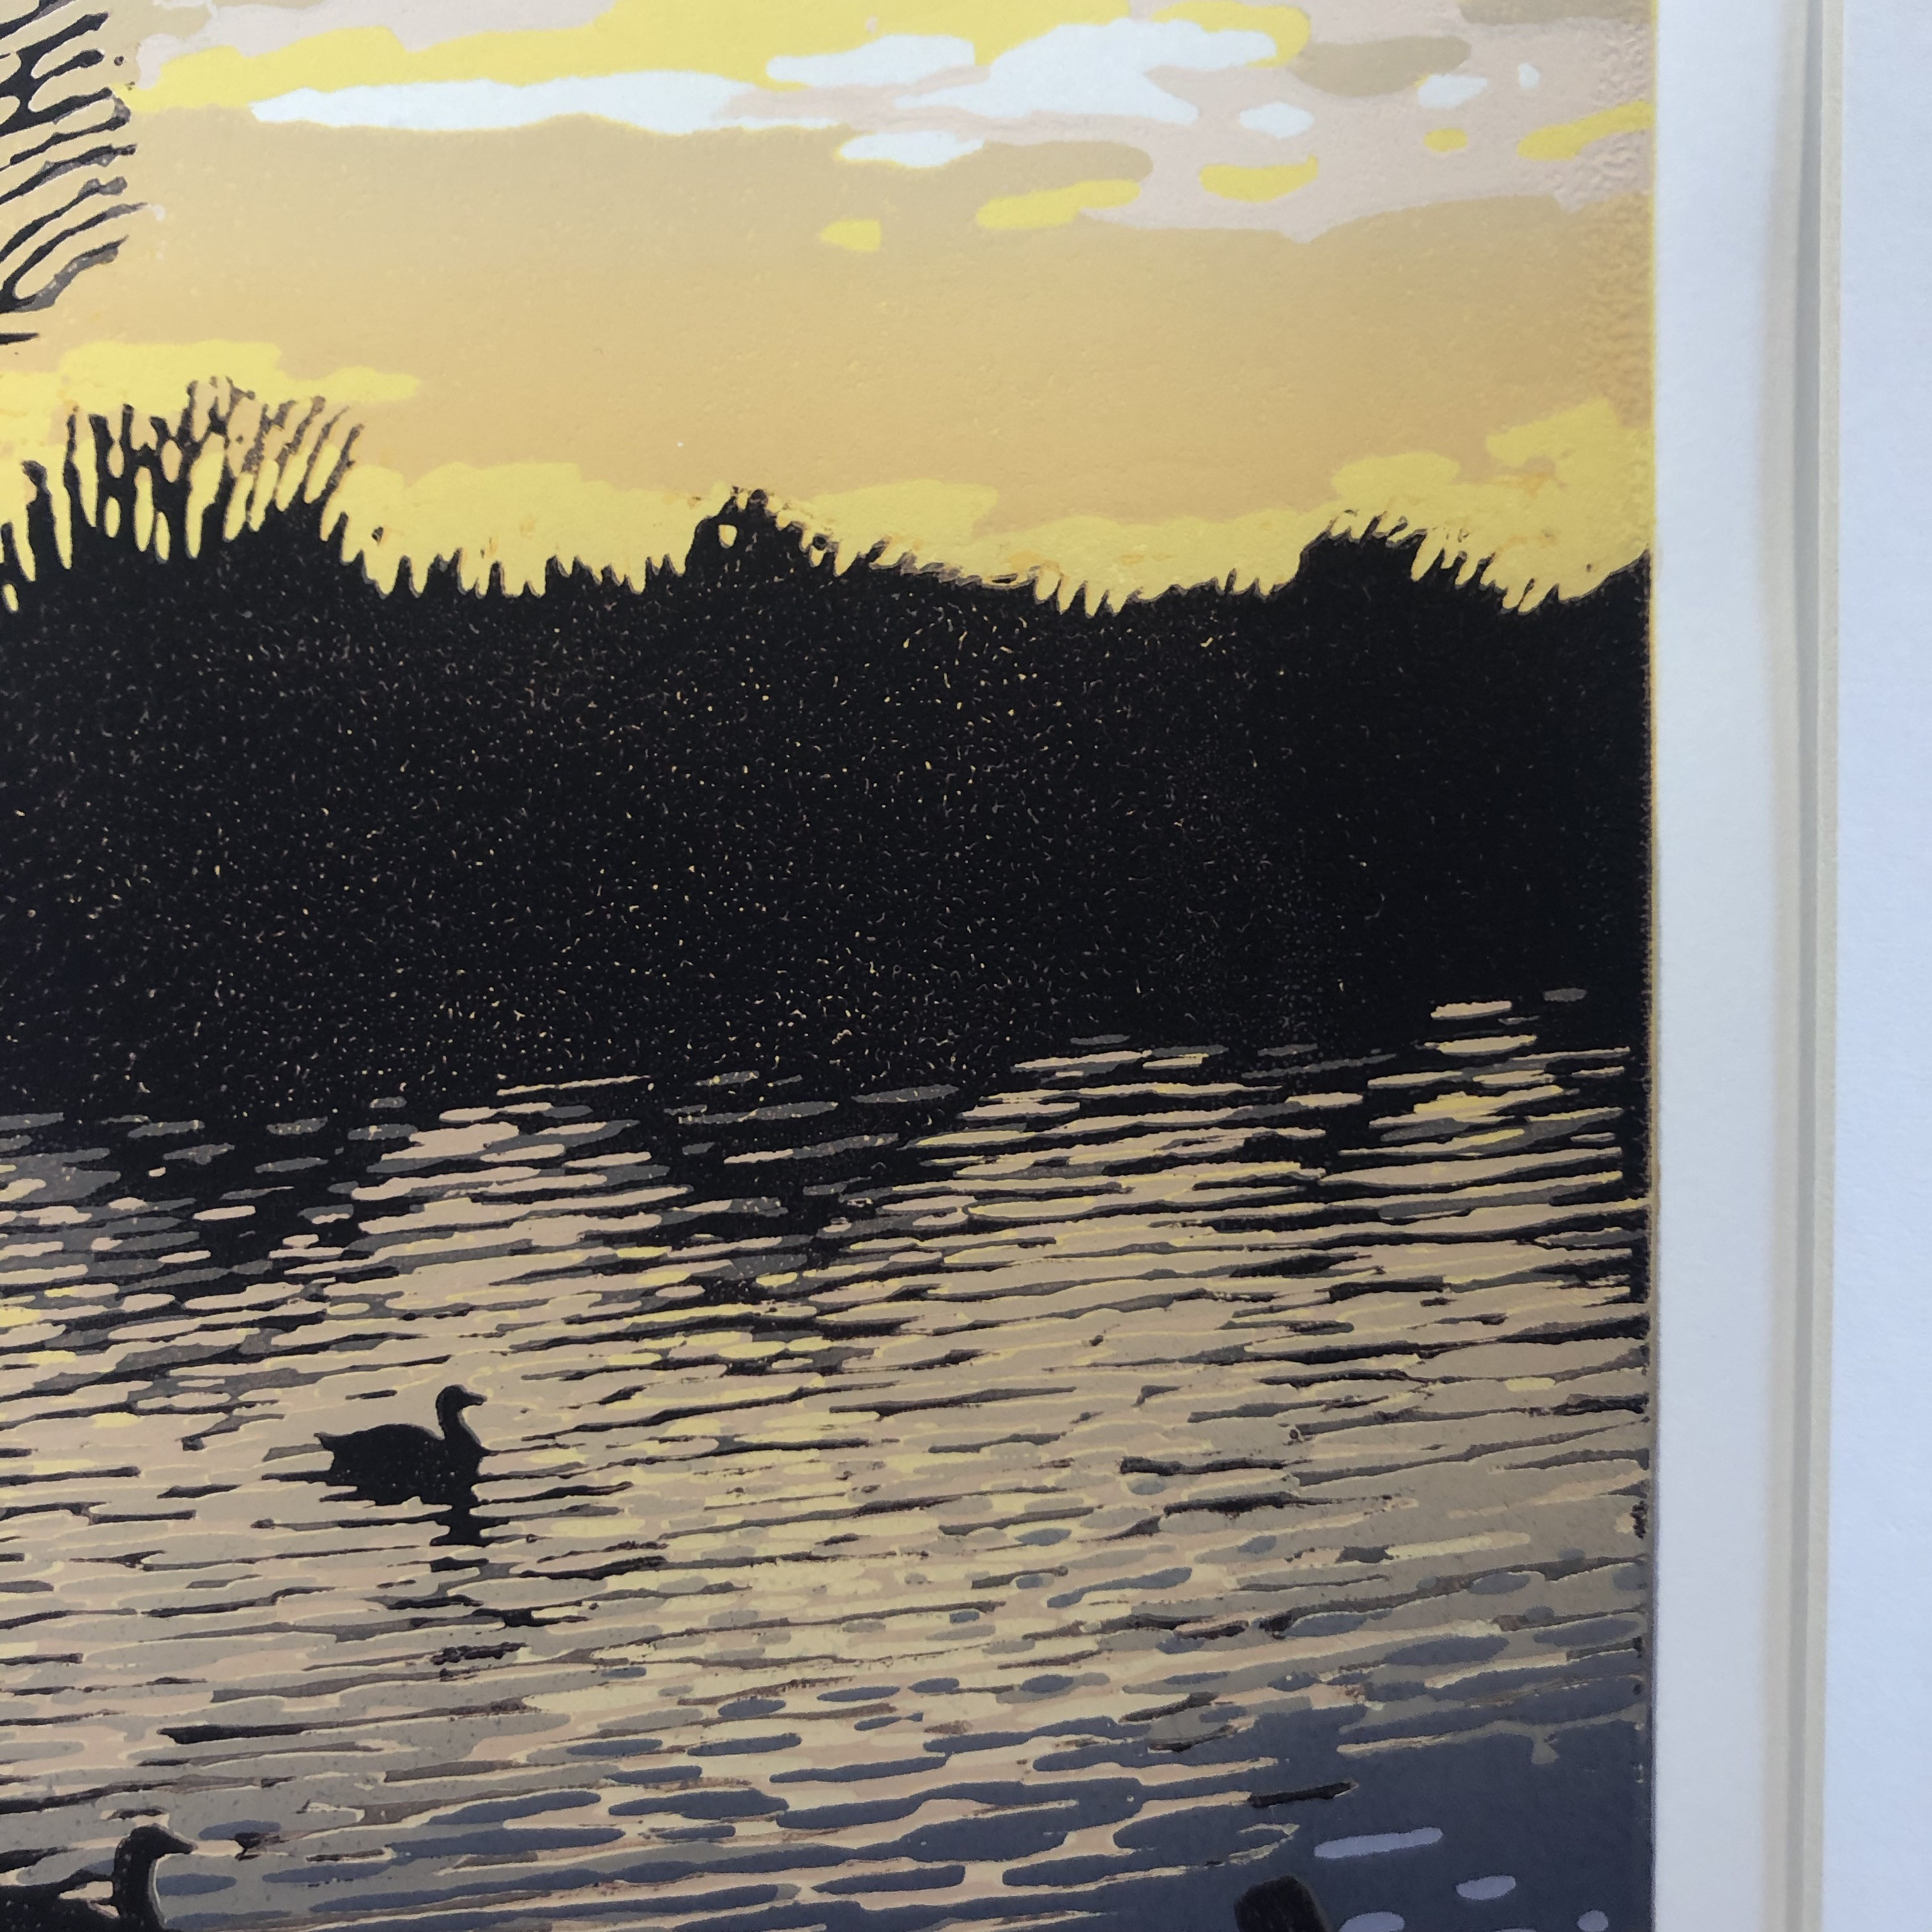 A reduction linocut of bright sunset reflecting over a wintry lake.